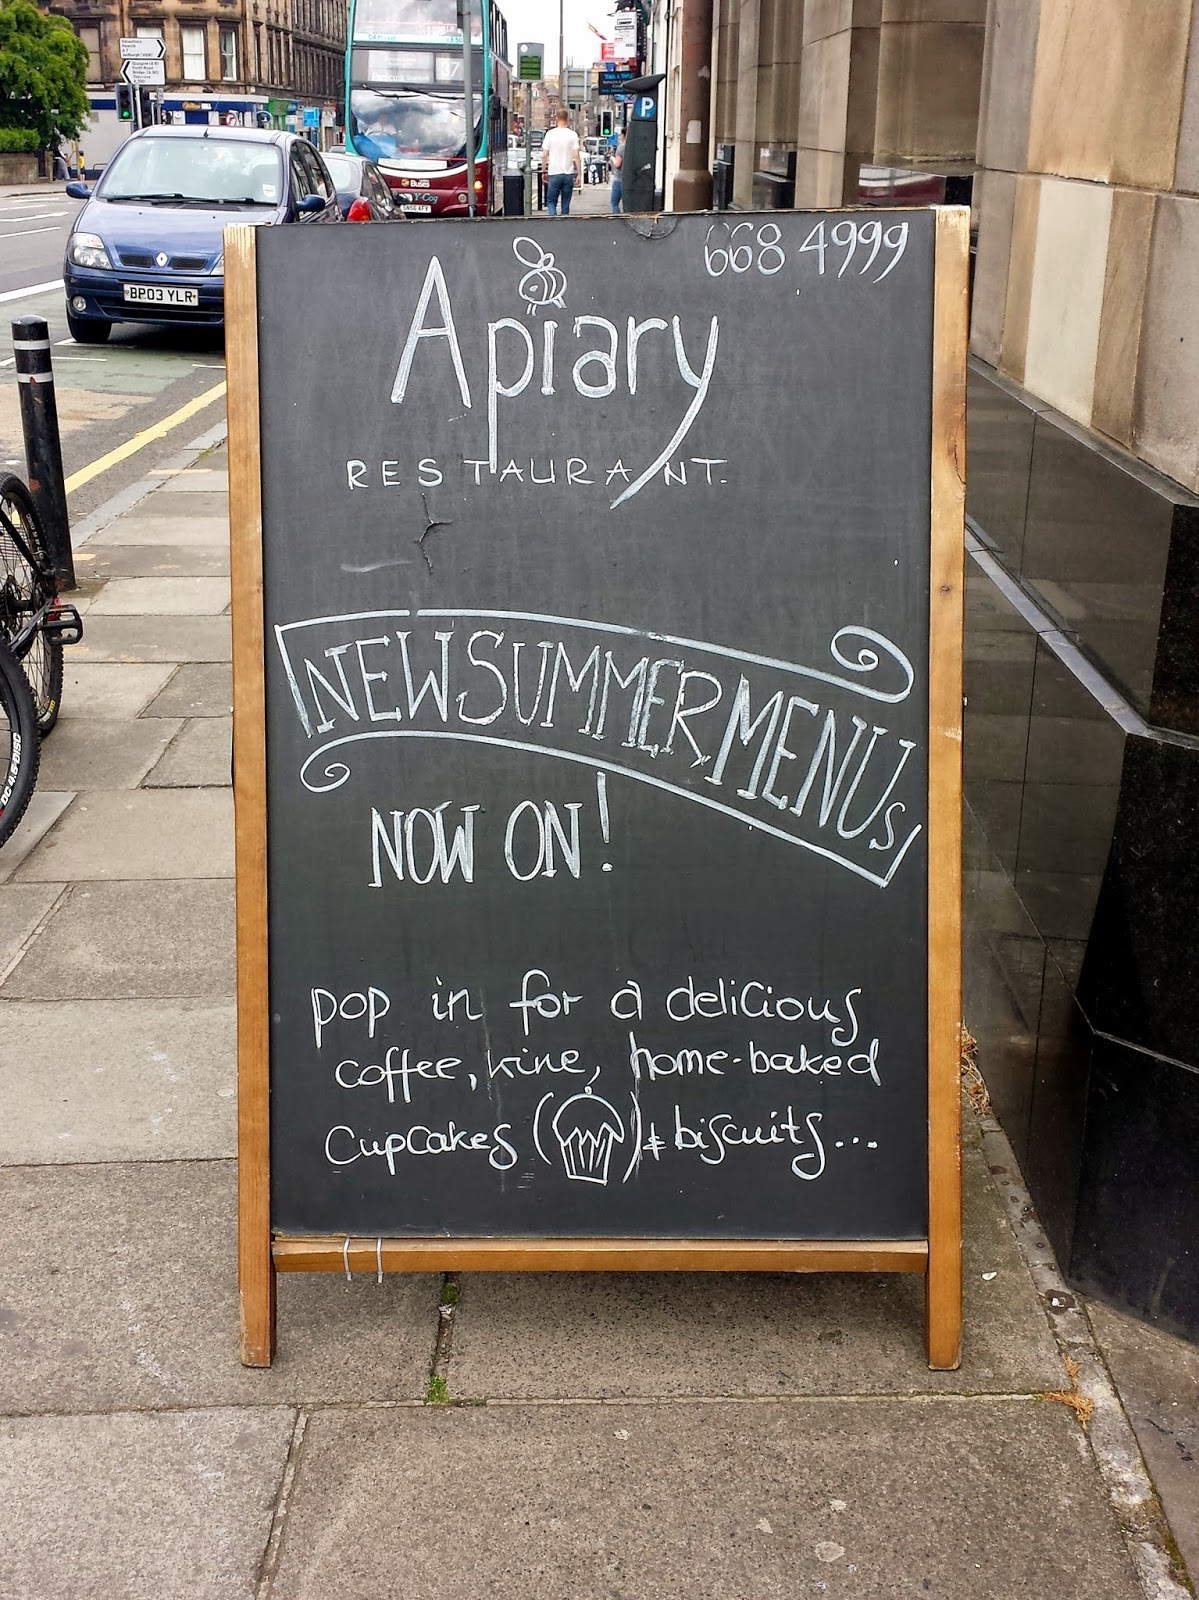 Apiary restaurant Edinburgh